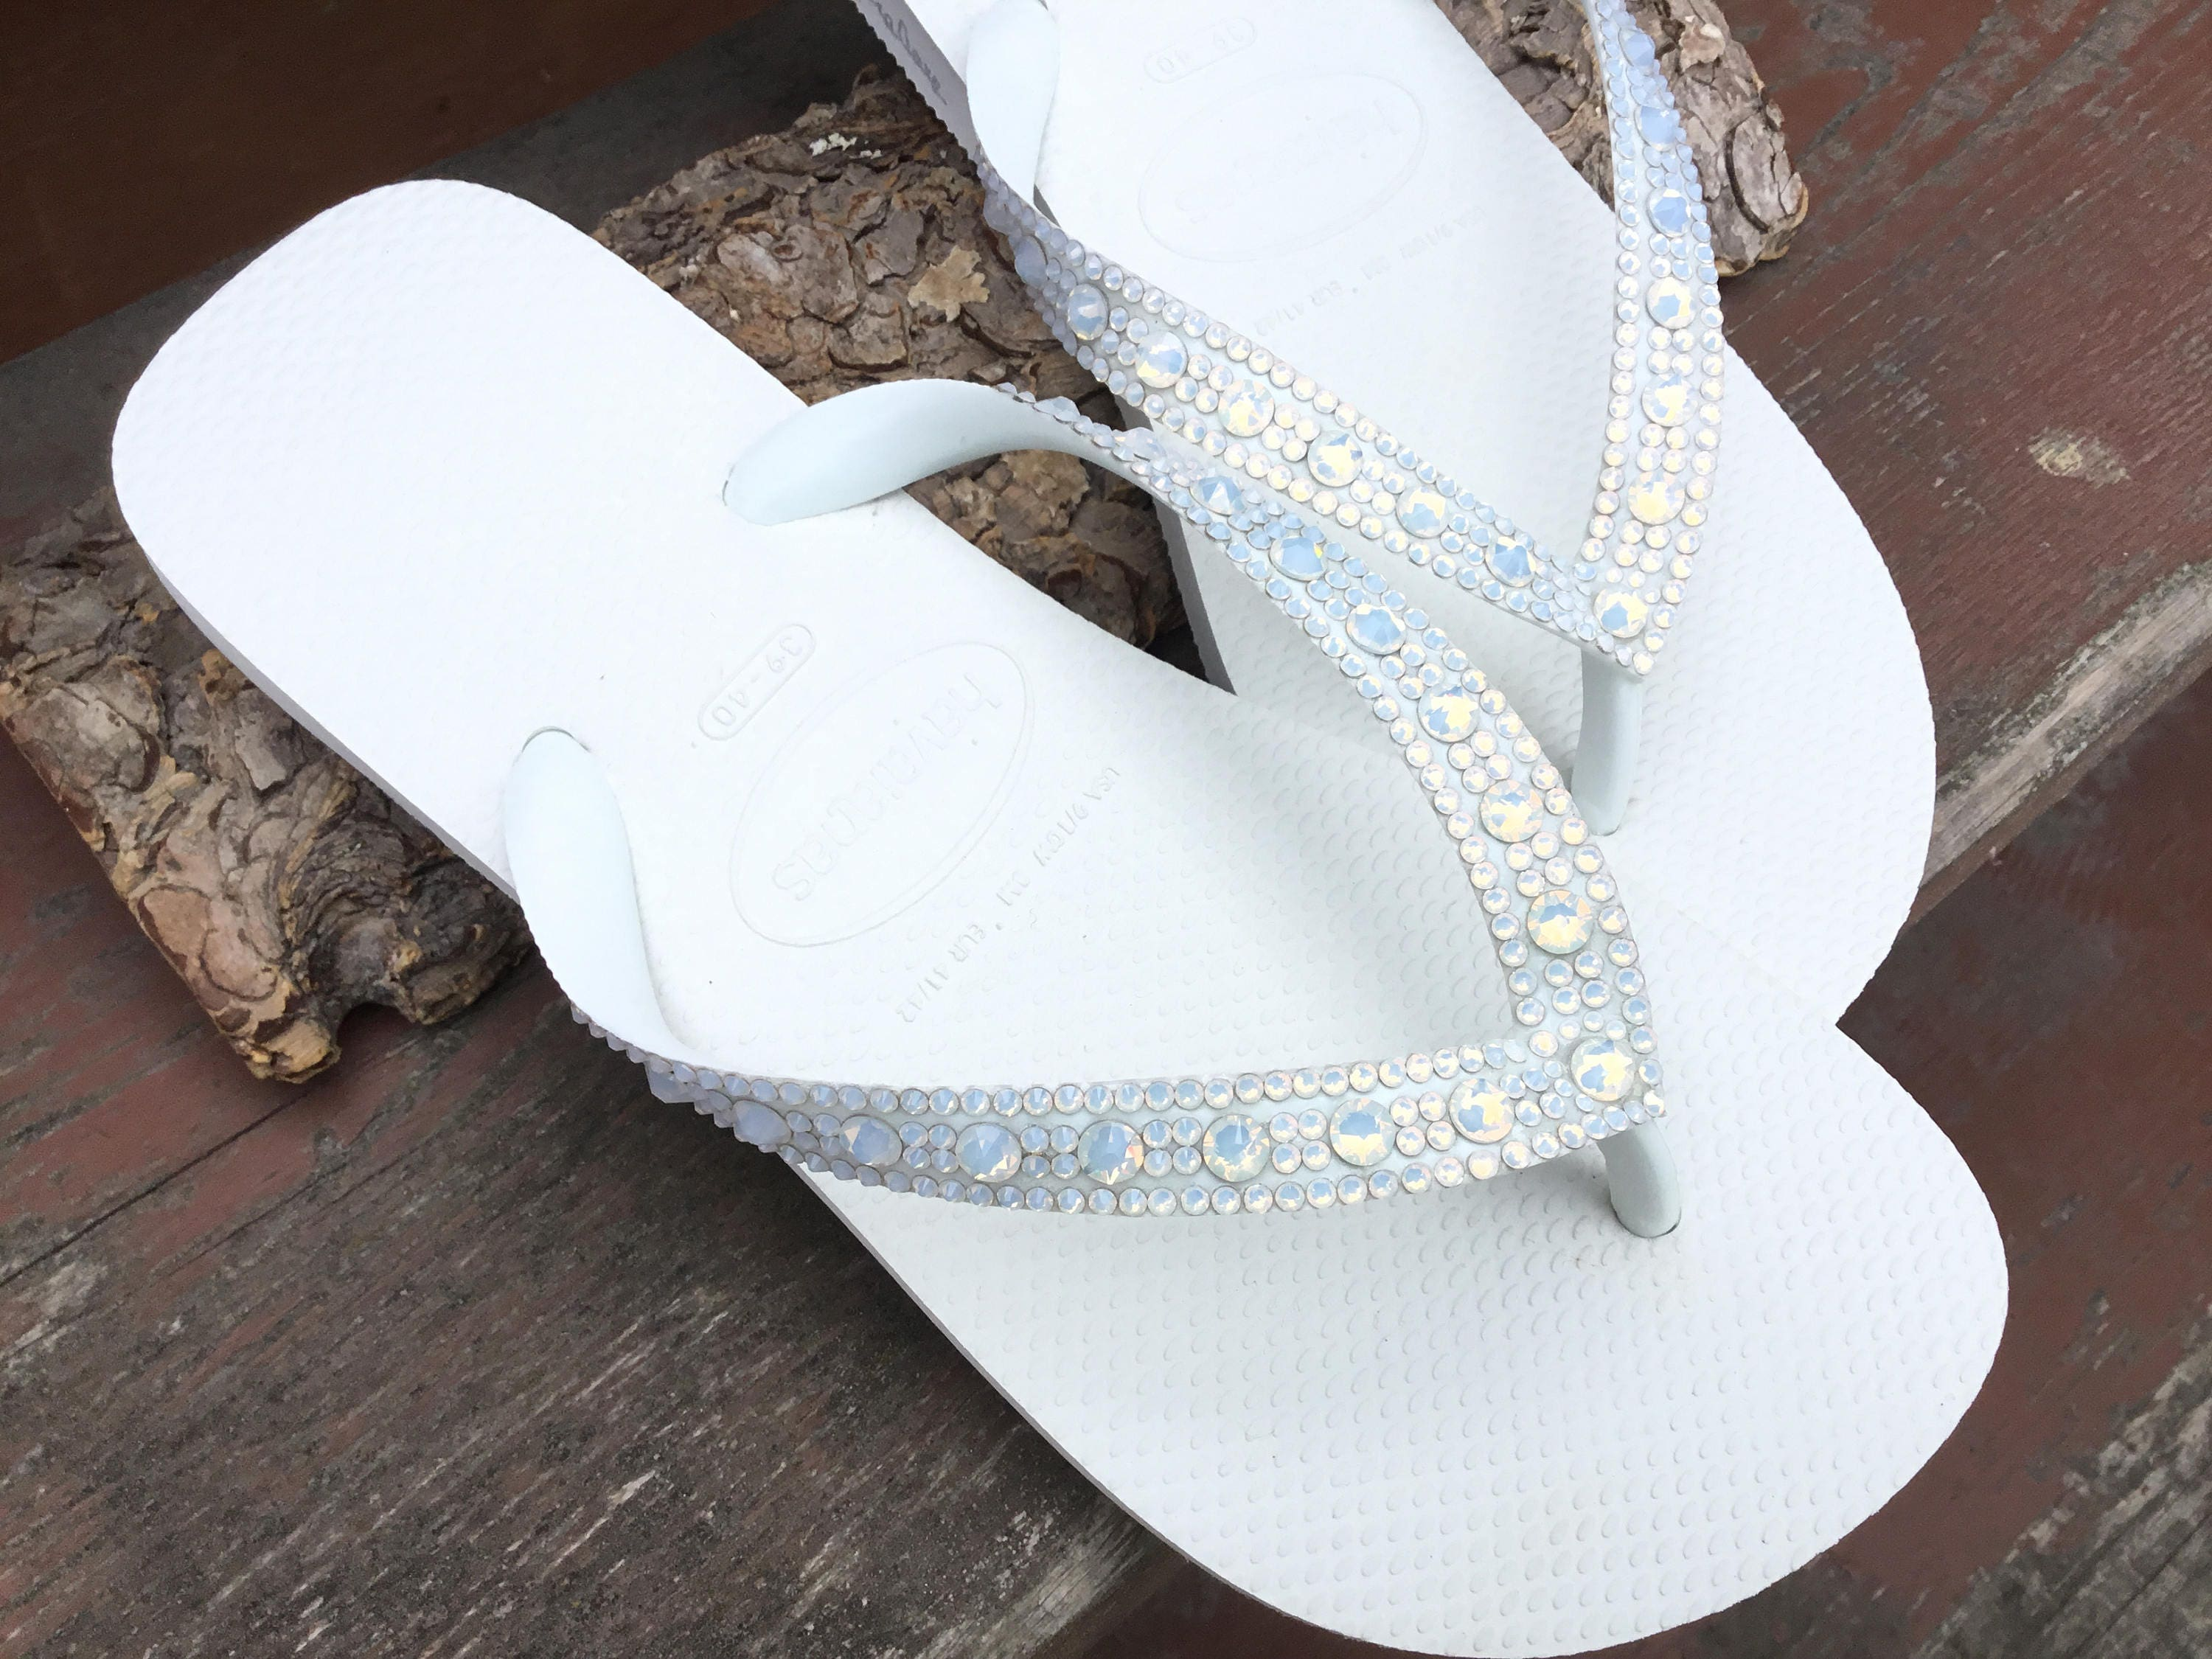 f94b58bf1 White Opal Crystal Wedding Flip Flops Full Moon Bling Havaianas or Cariris  Wedge Heels w  Swarovski Rhinestones Beach Bride Reception Shoes